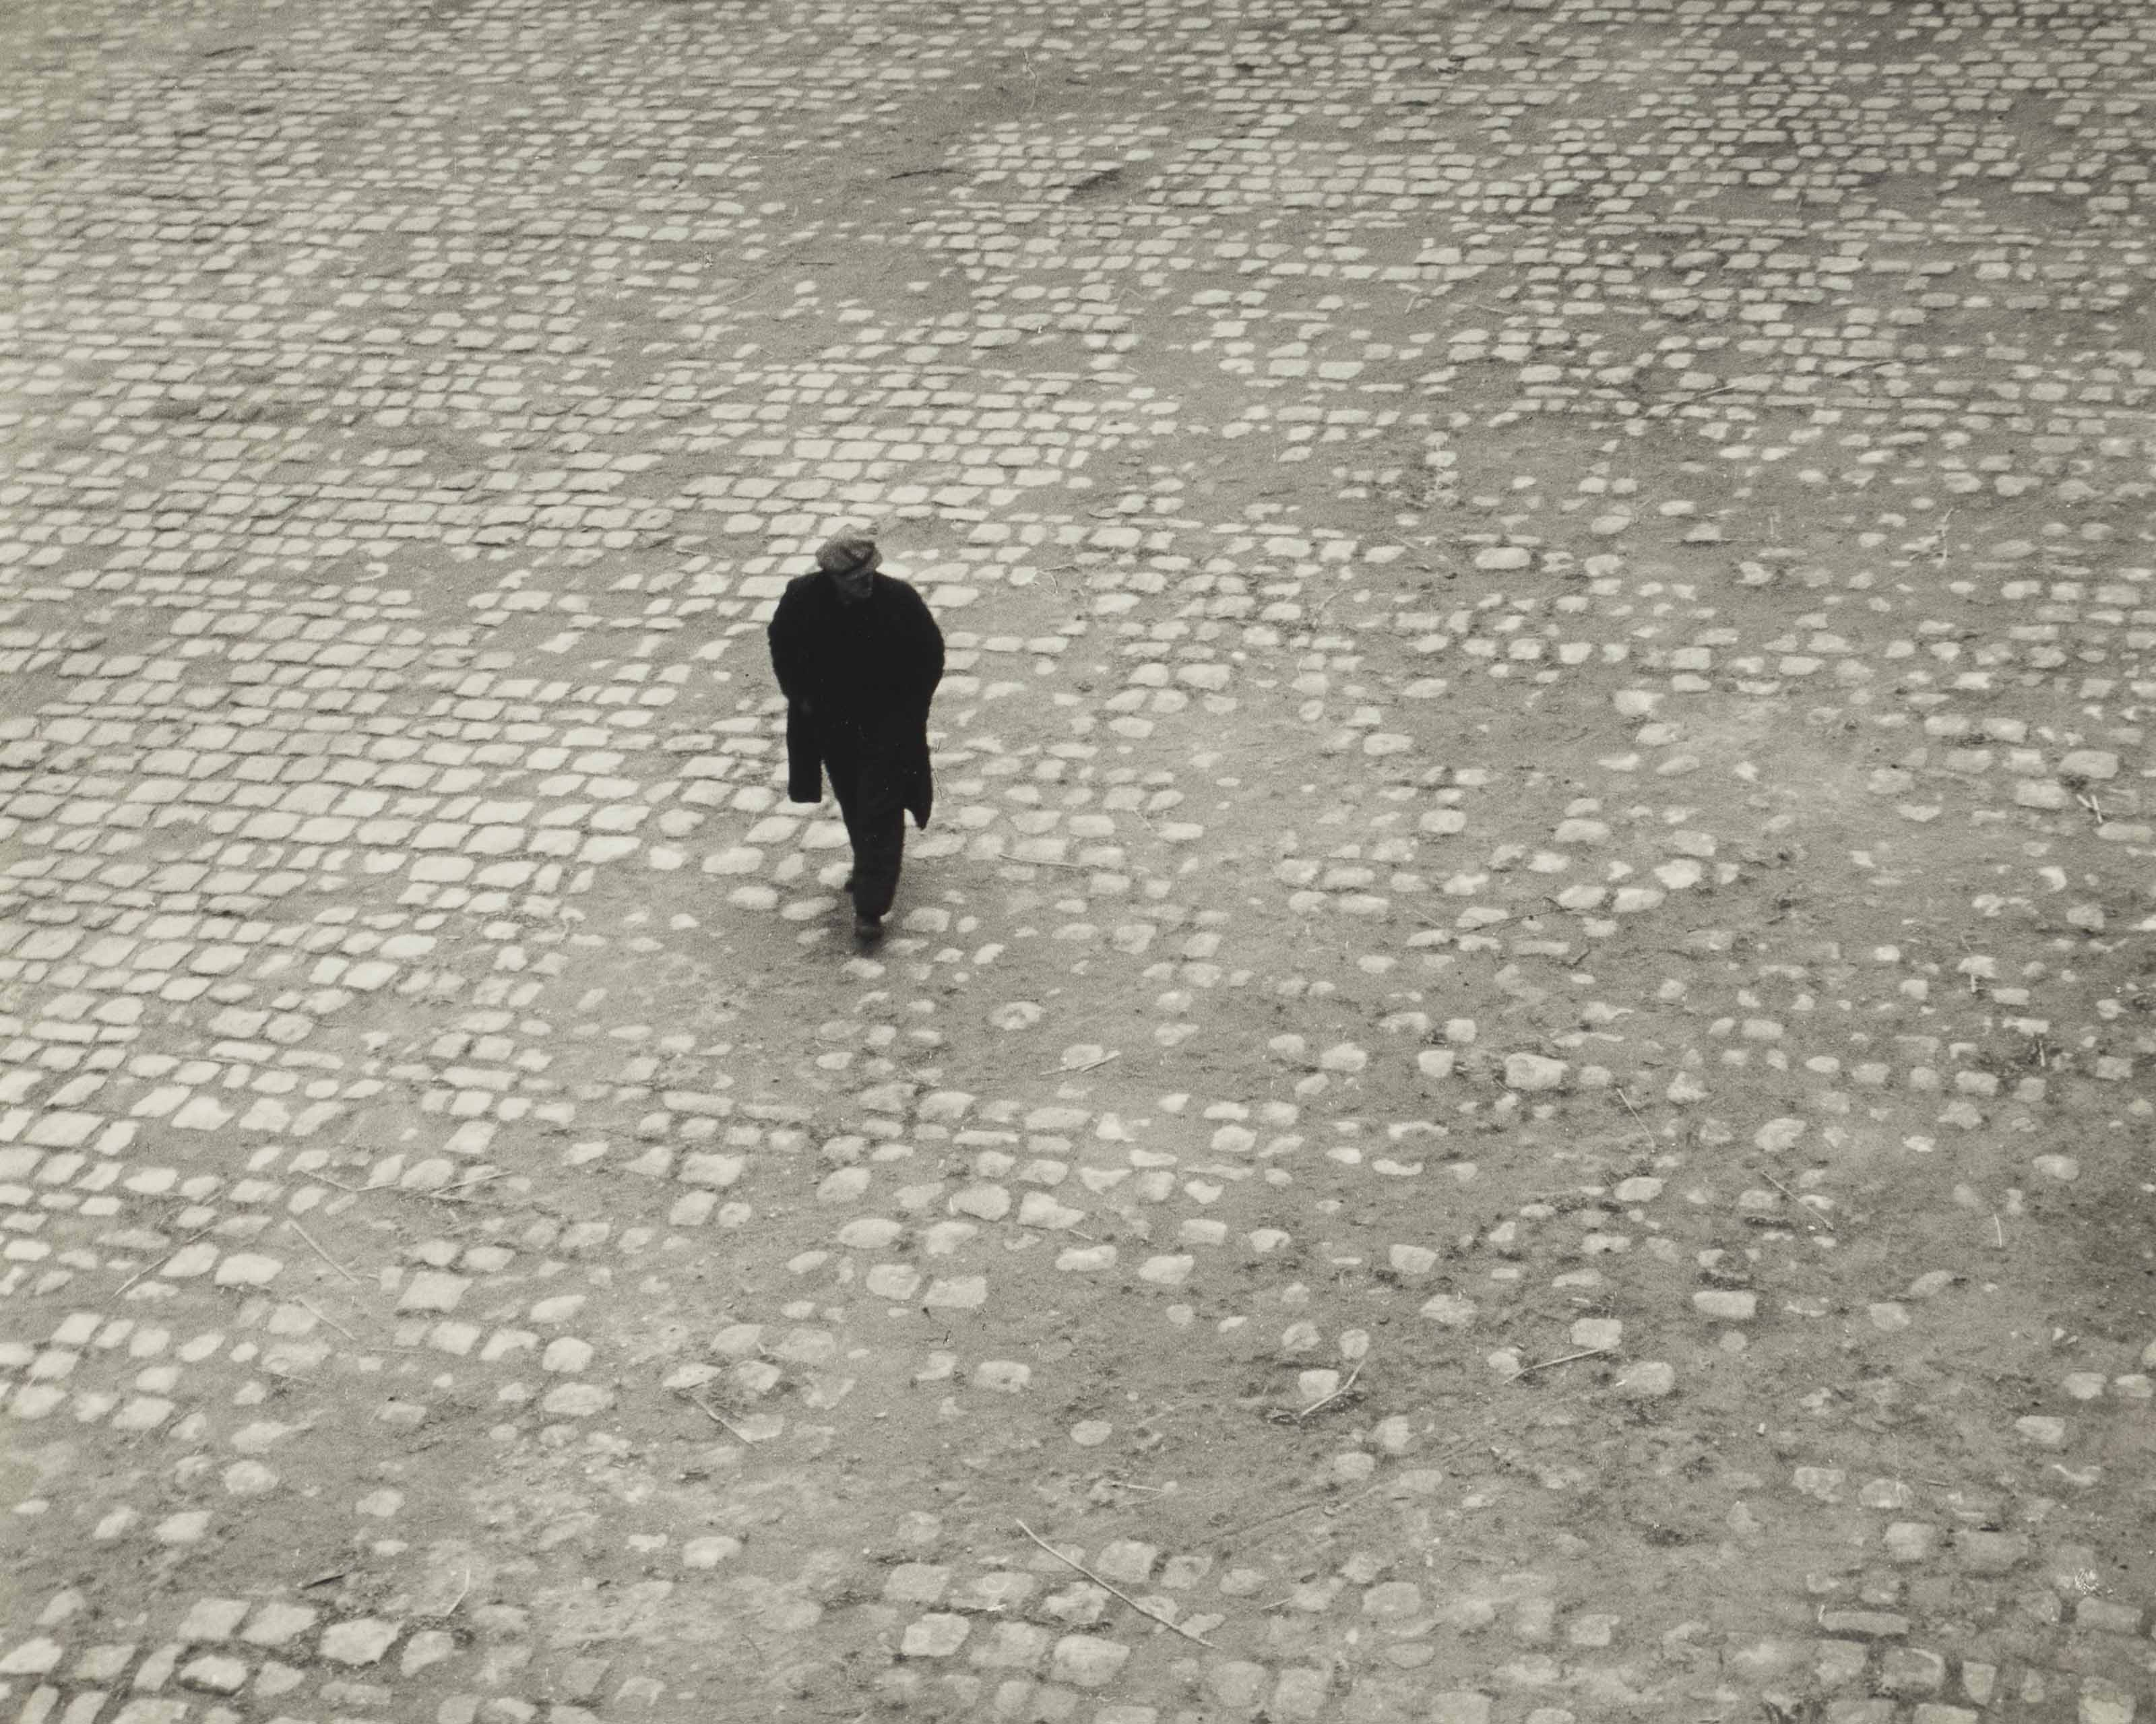 Alone, Paris, 1930